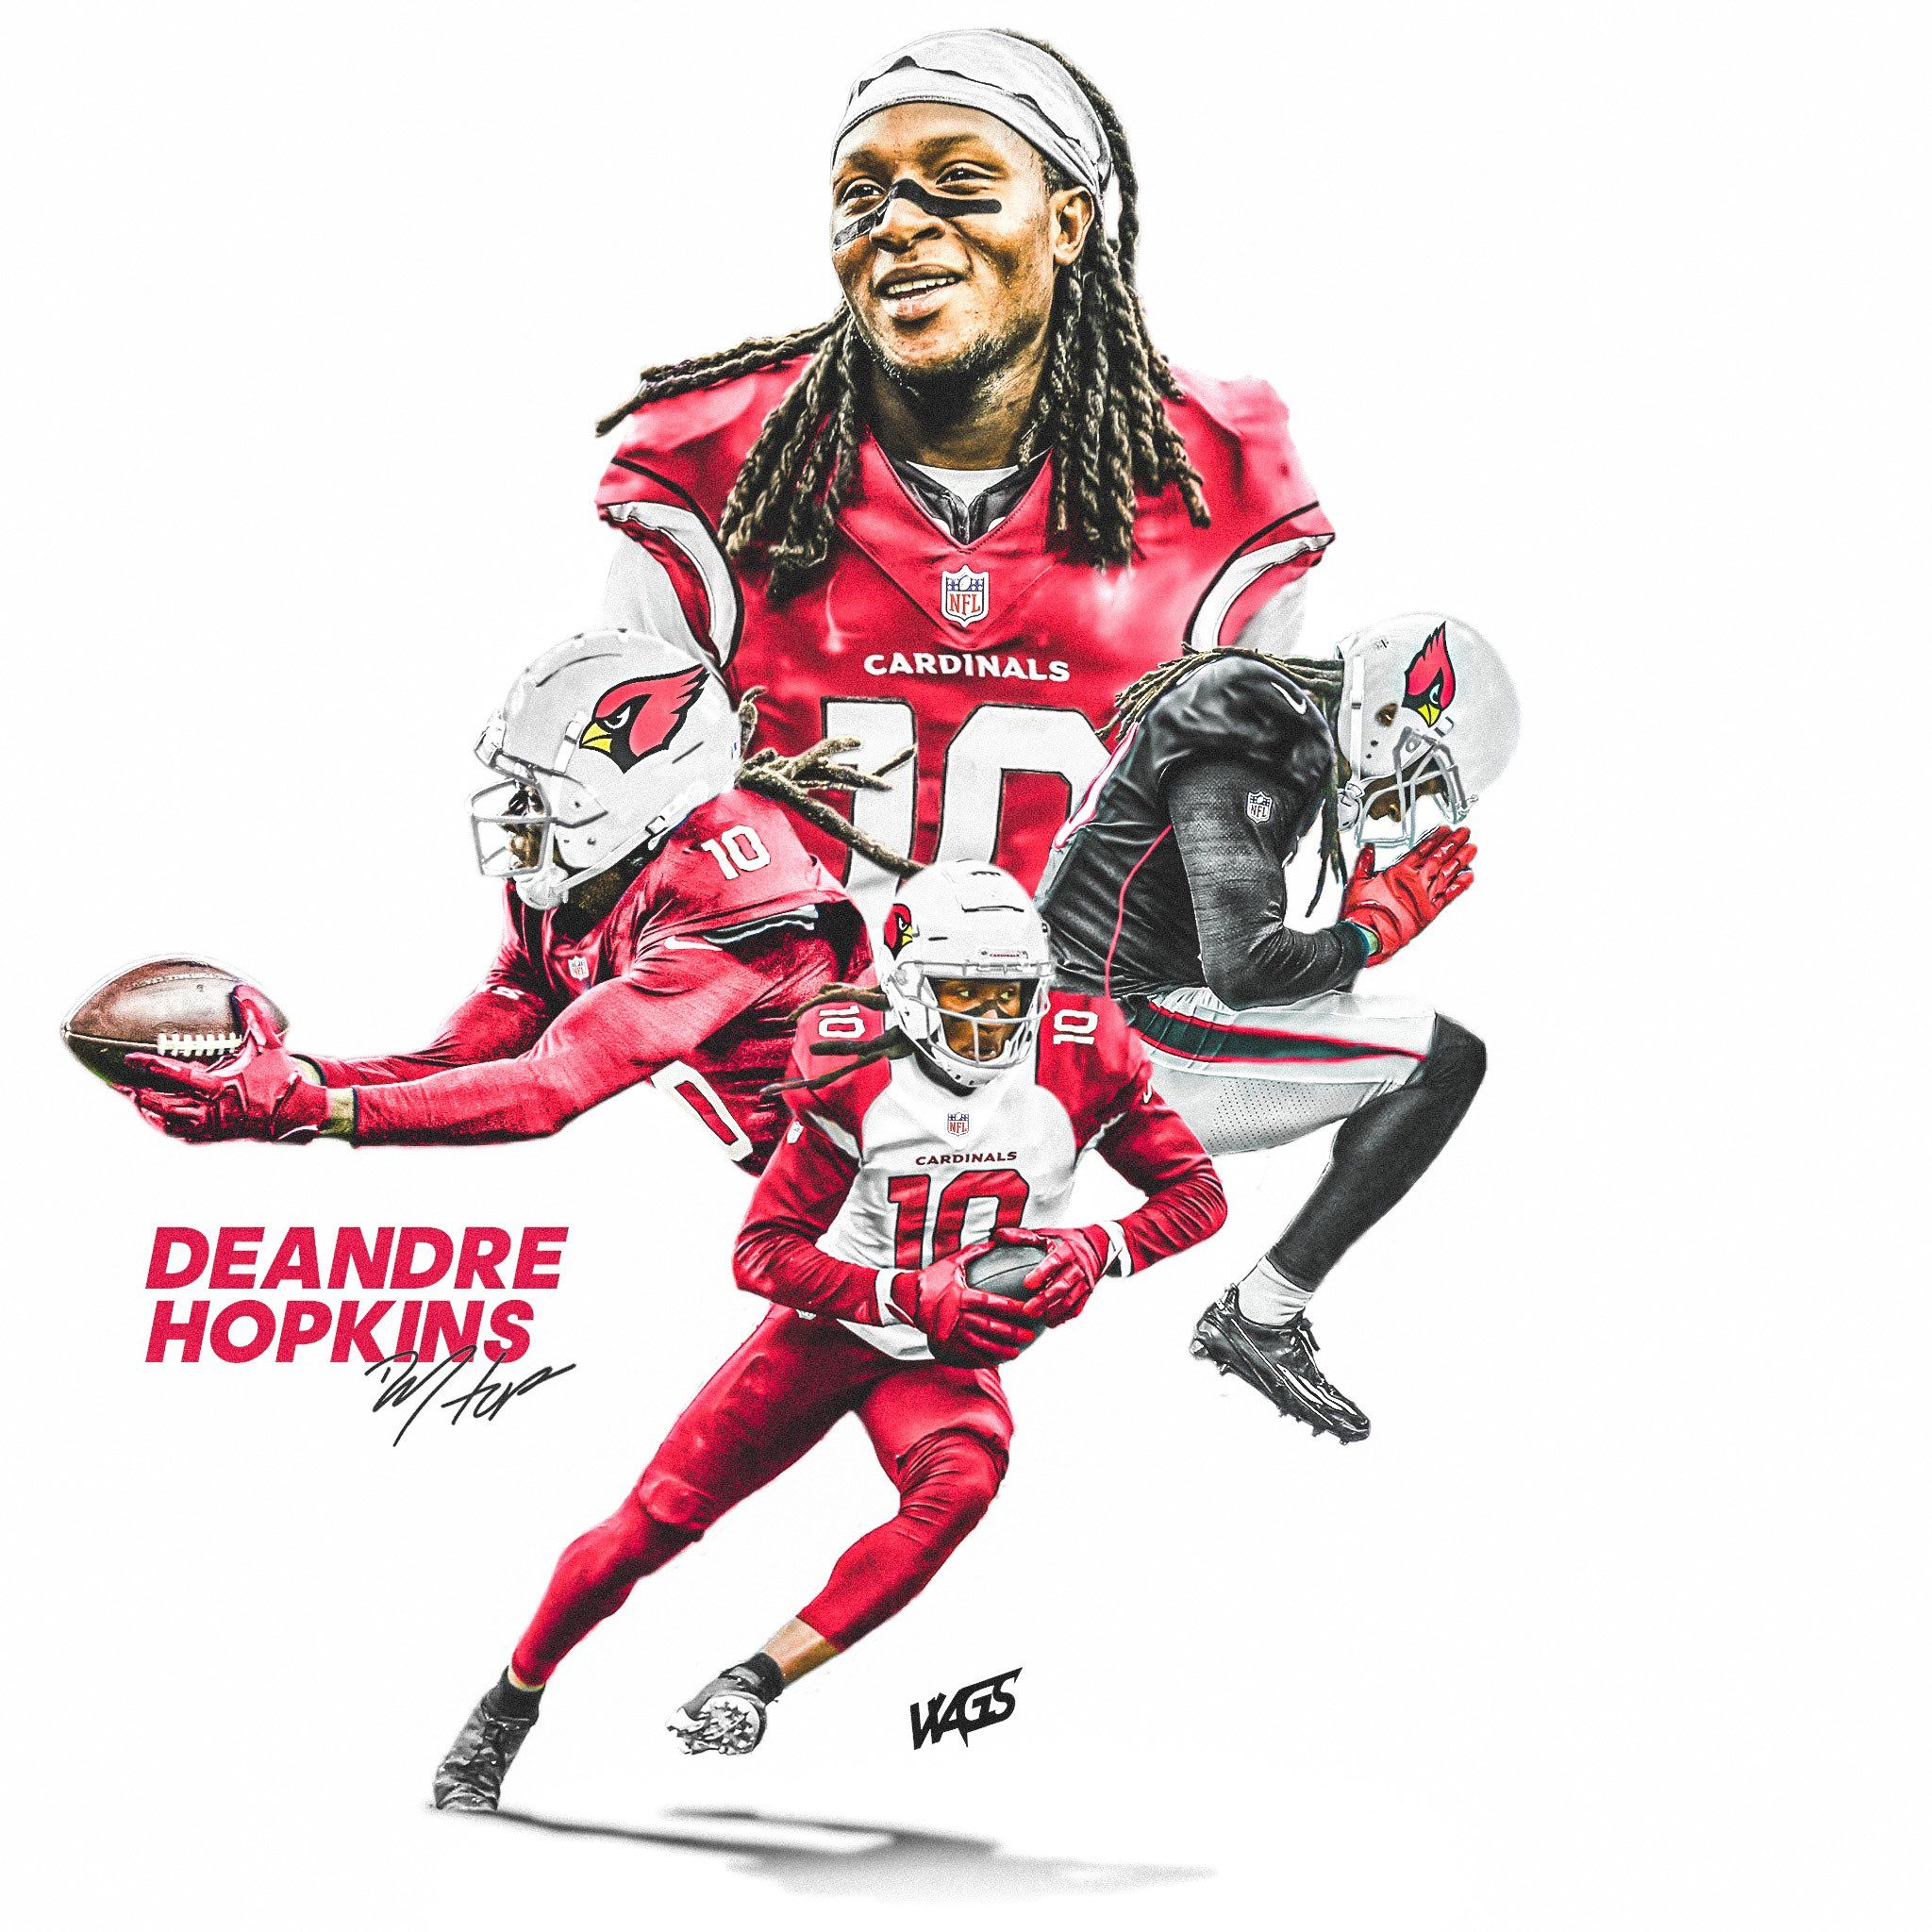 Wdgs On Twitter In 2020 Nfl Football Players Football Funny Nfl Football Art